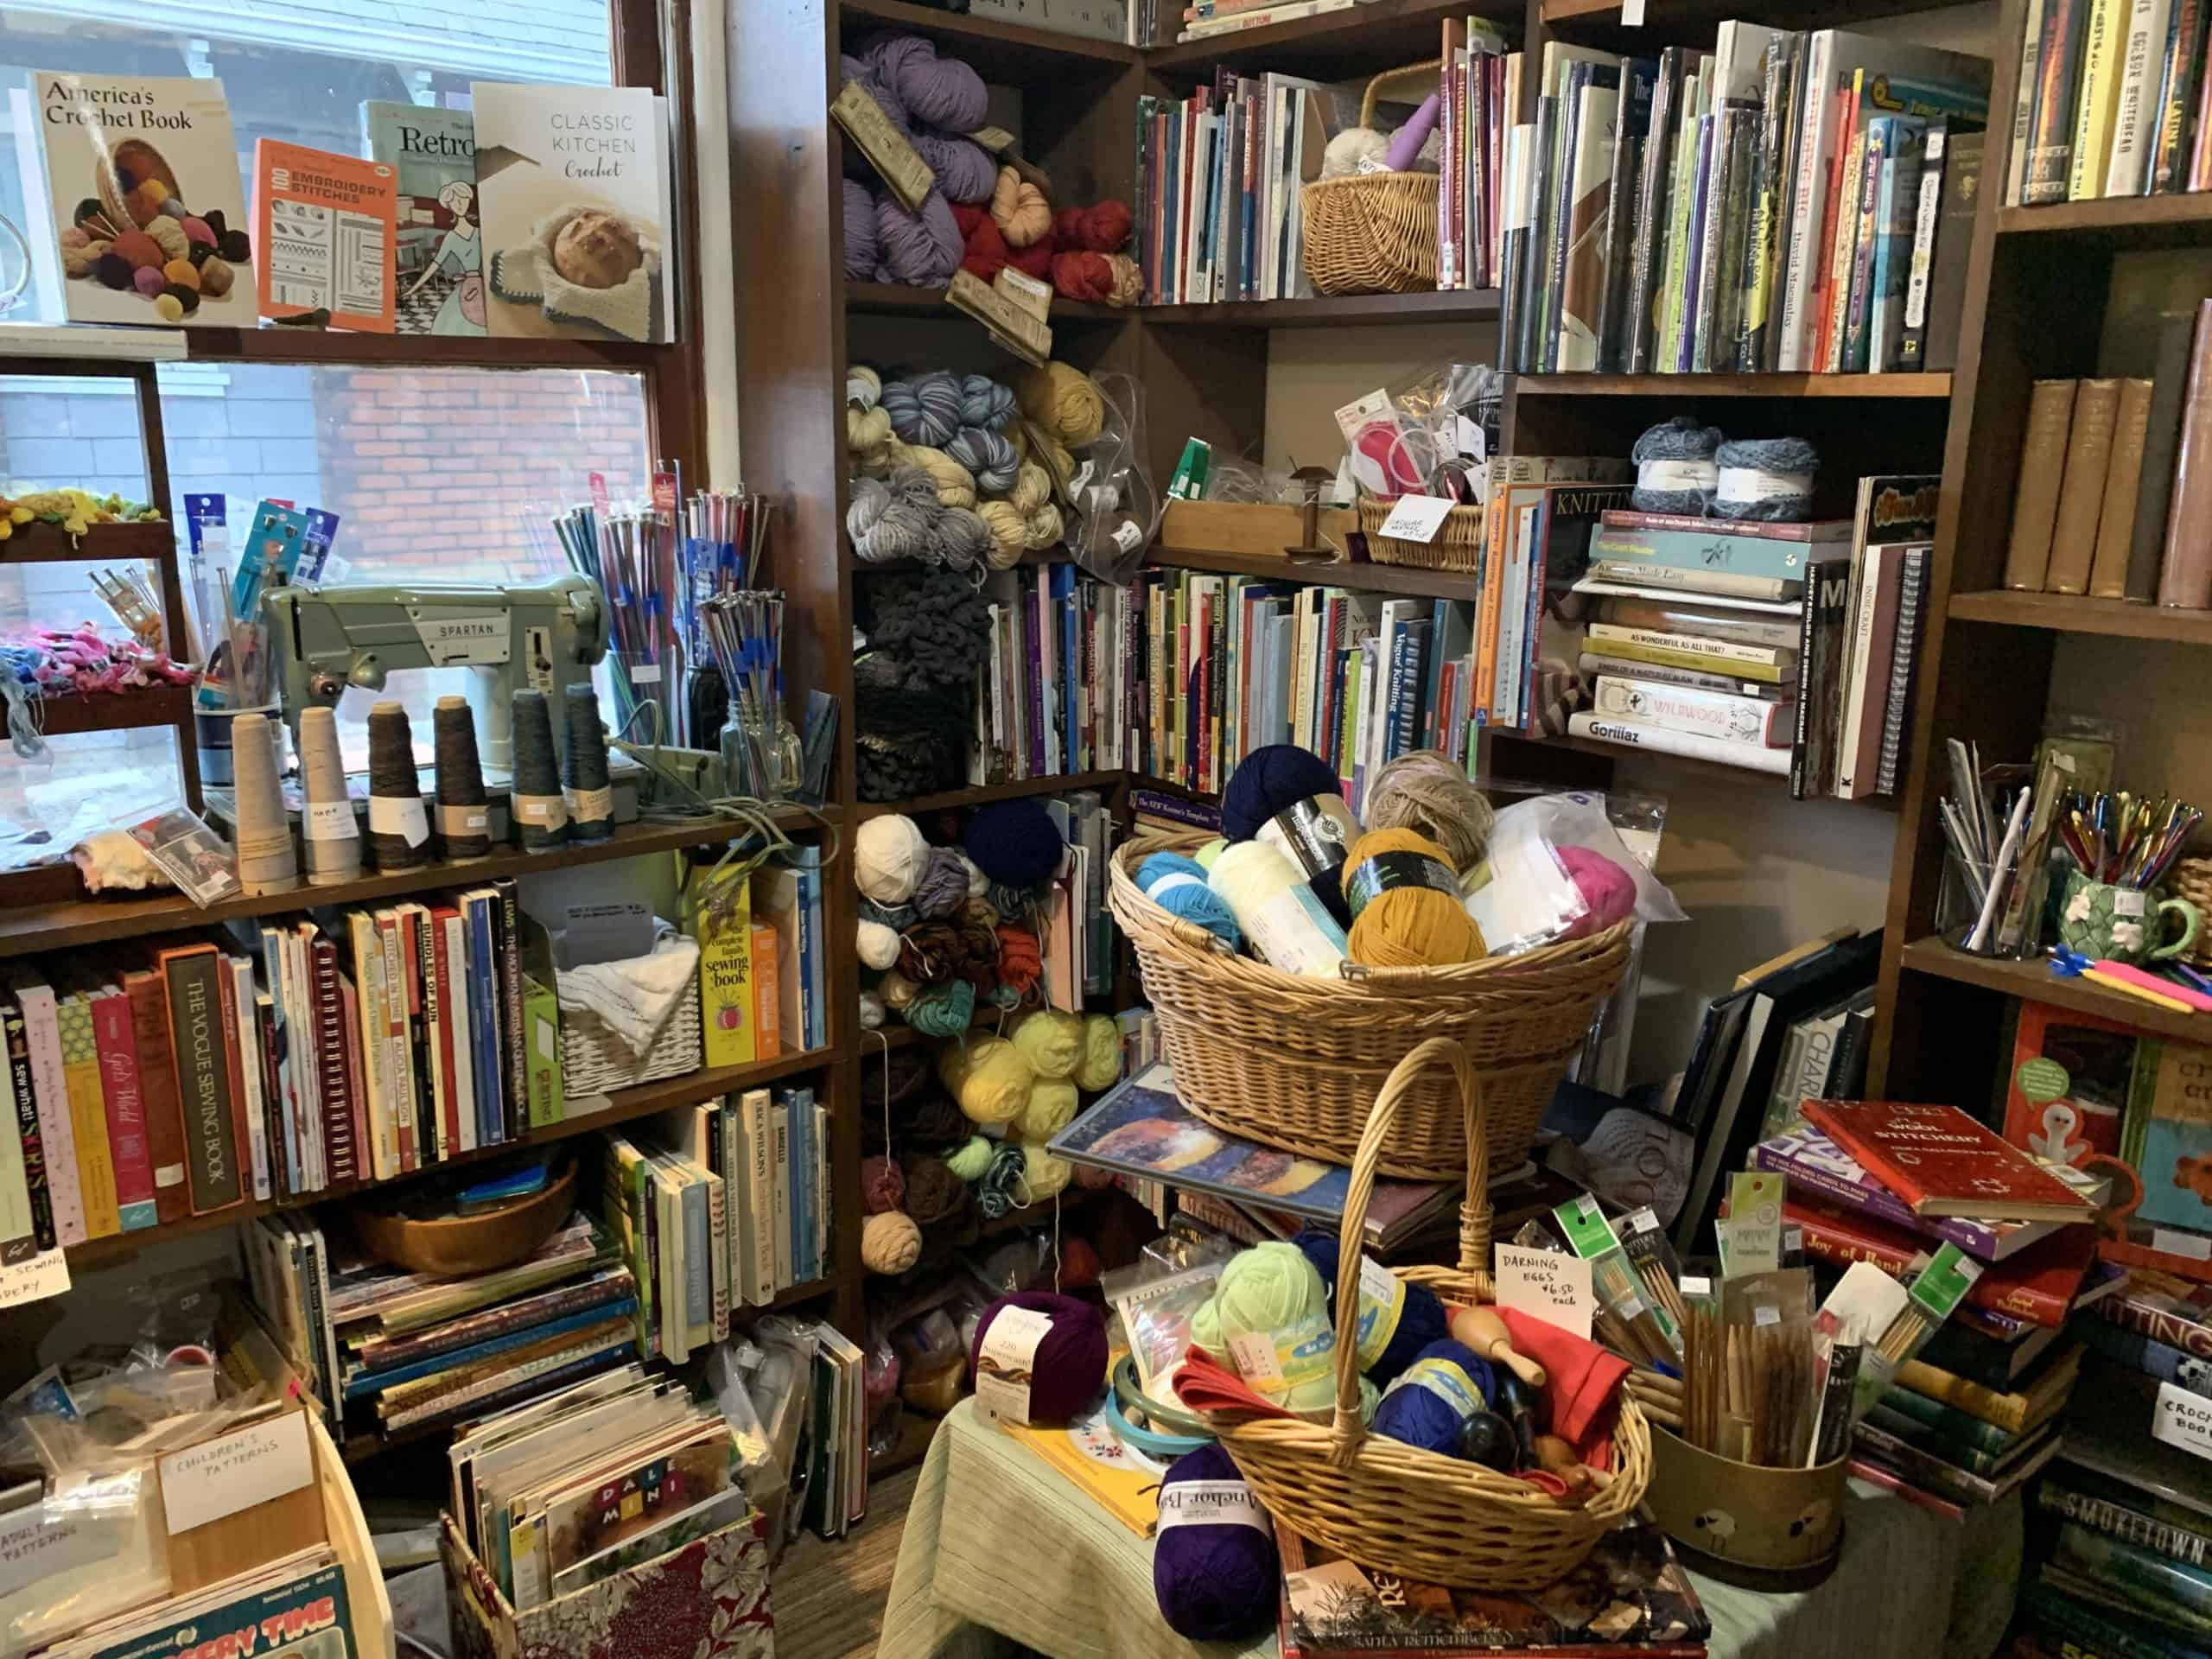 Shelves filled with books and yarn.